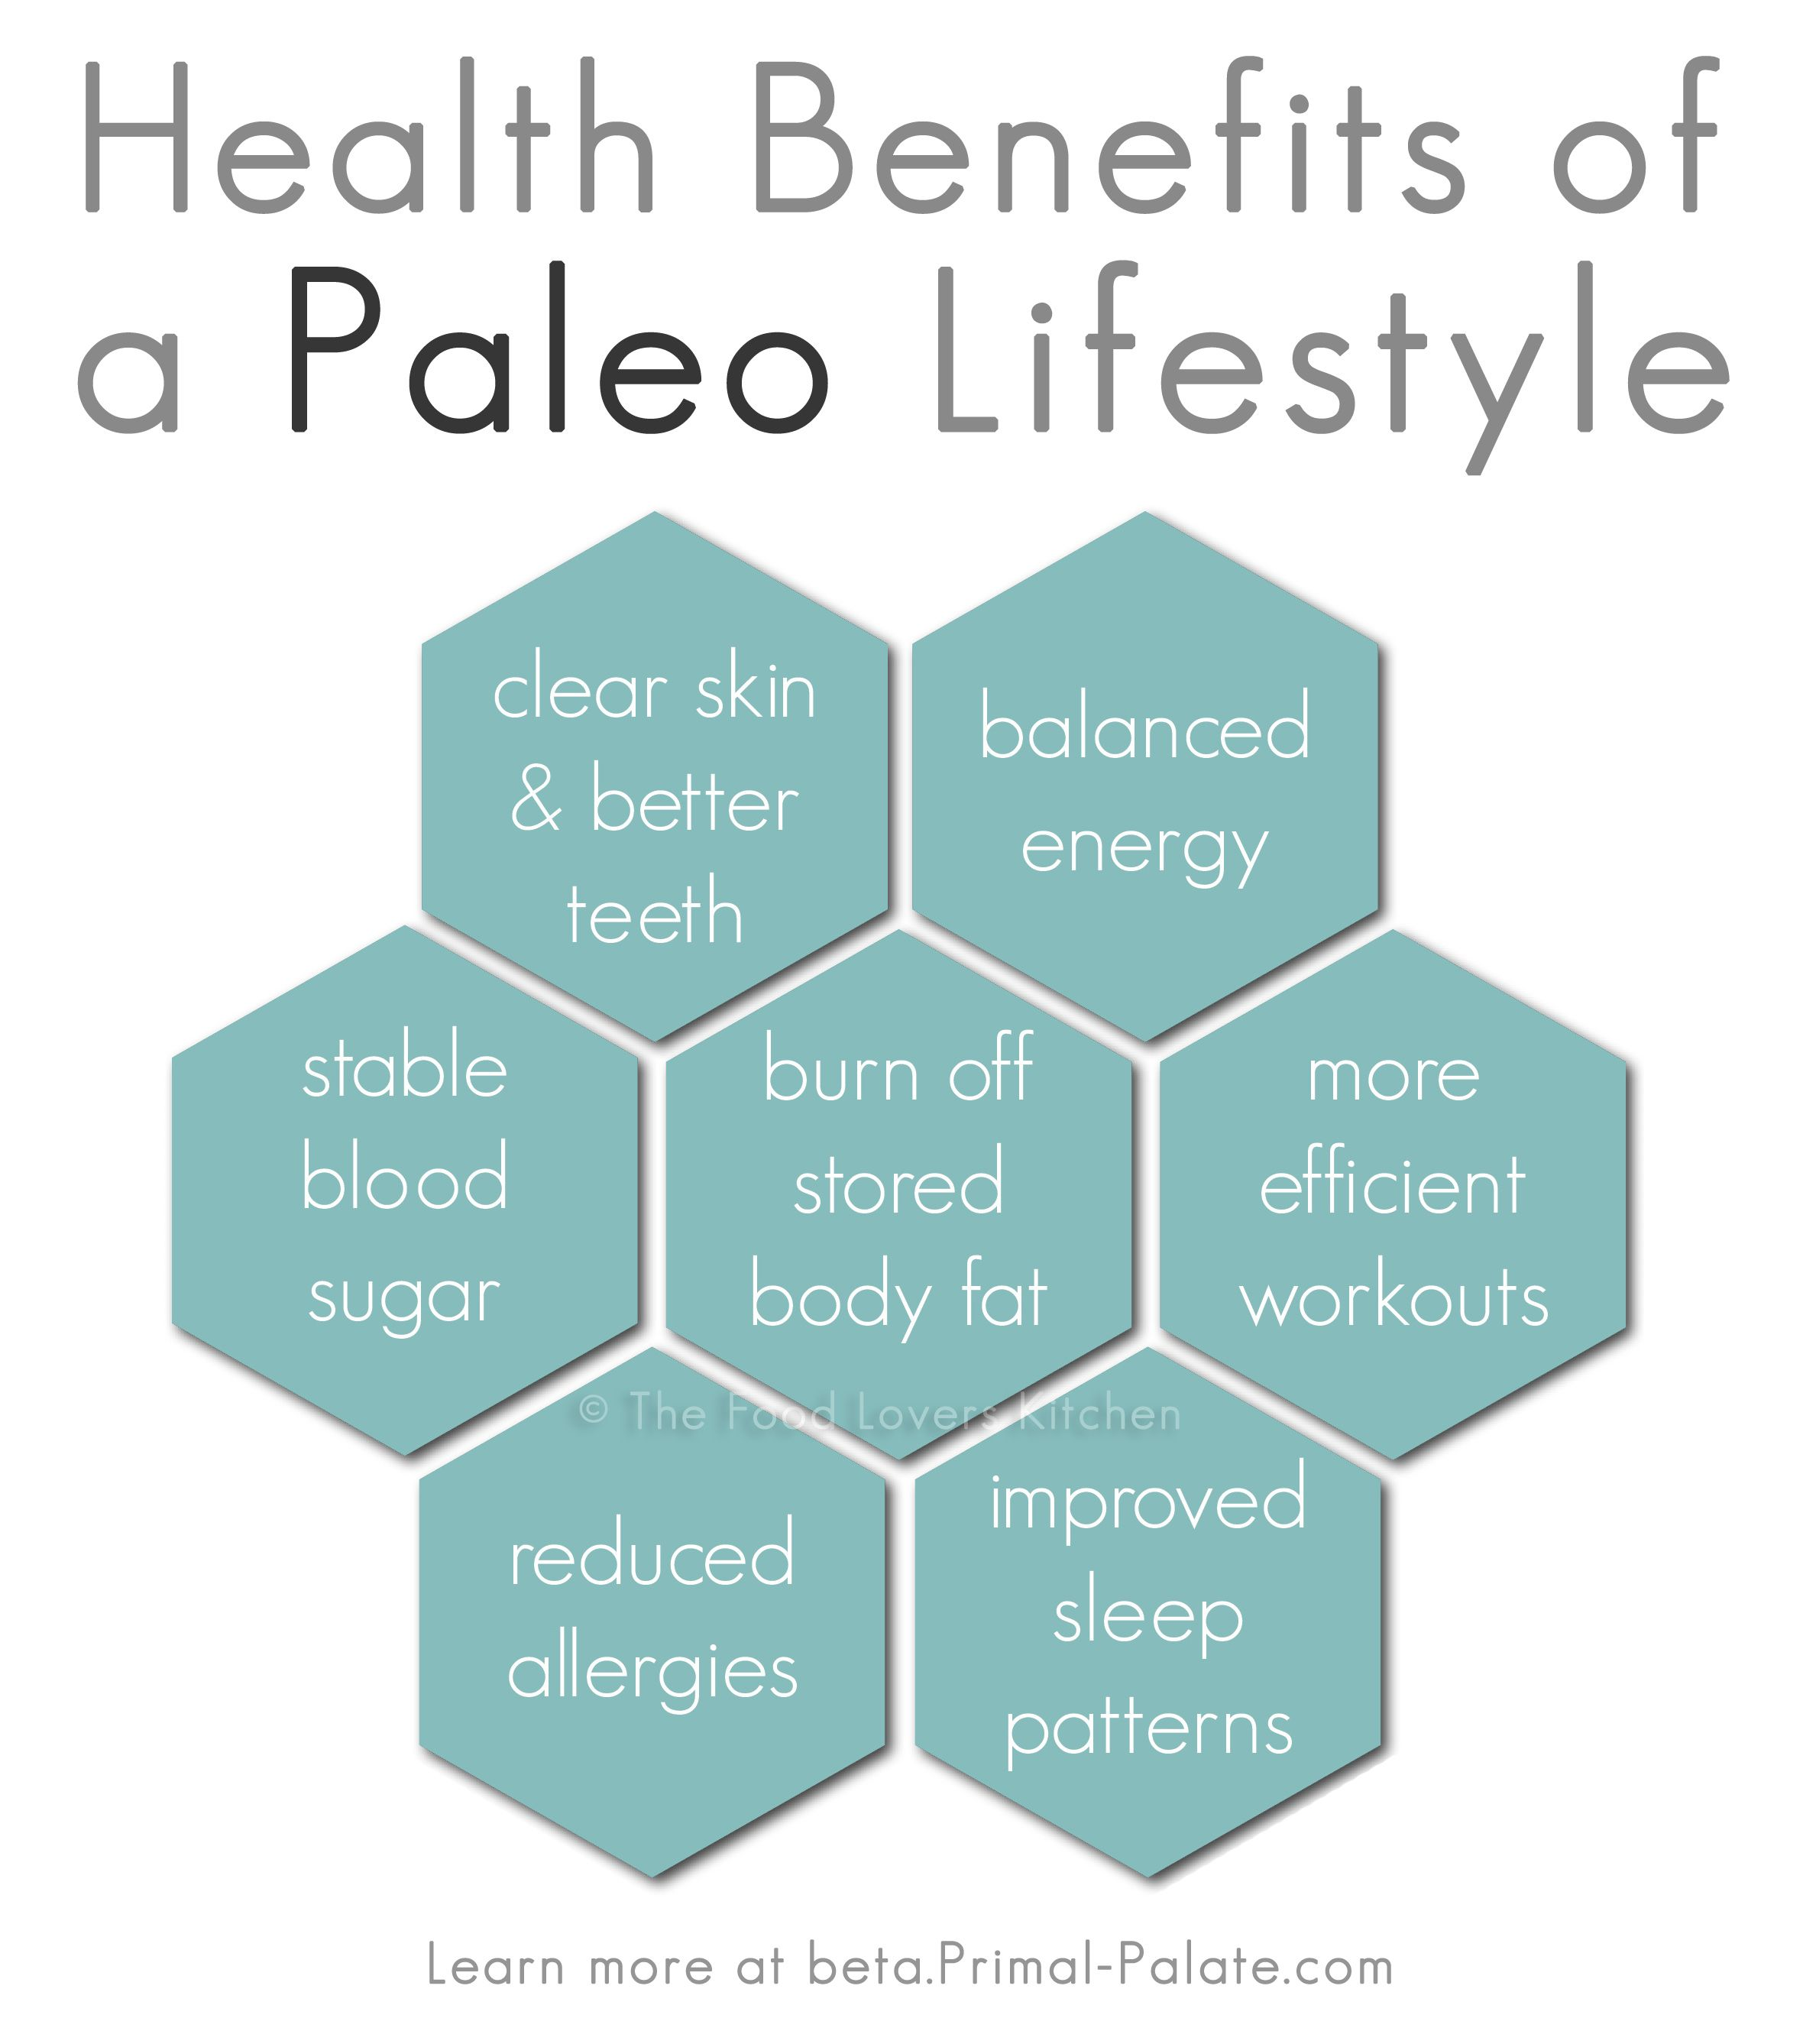 Health benefits of a Paleo lifestyle